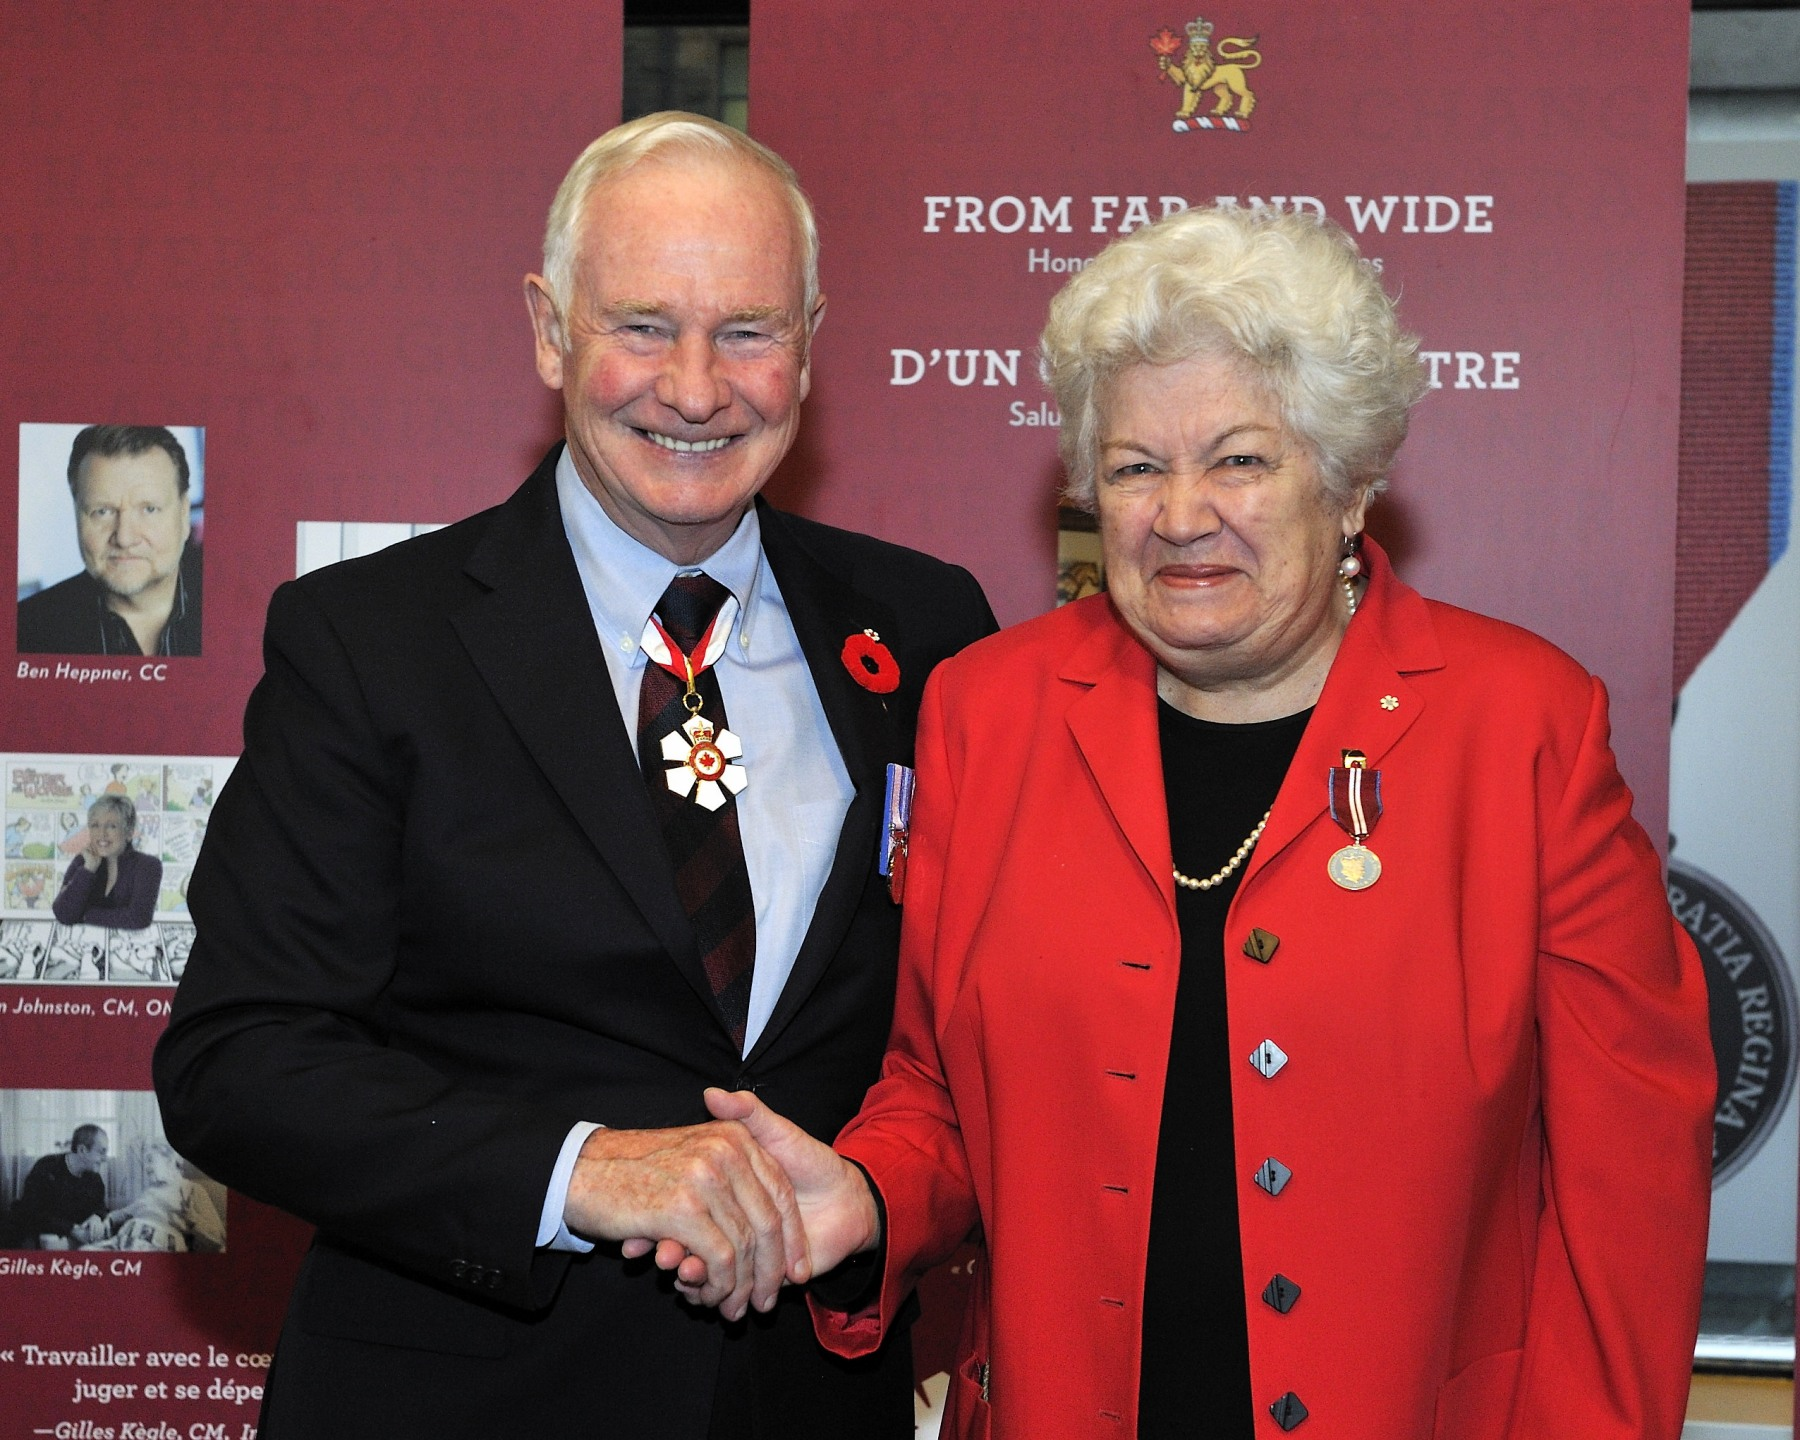 The Honourable Monique Bégin, P.C., O.C. (Ottawa, Ontario) is recognized for her active role in the fight for the rights of the less fortunate, and for the rights of women, senior citizens, Aboriginal people and children.